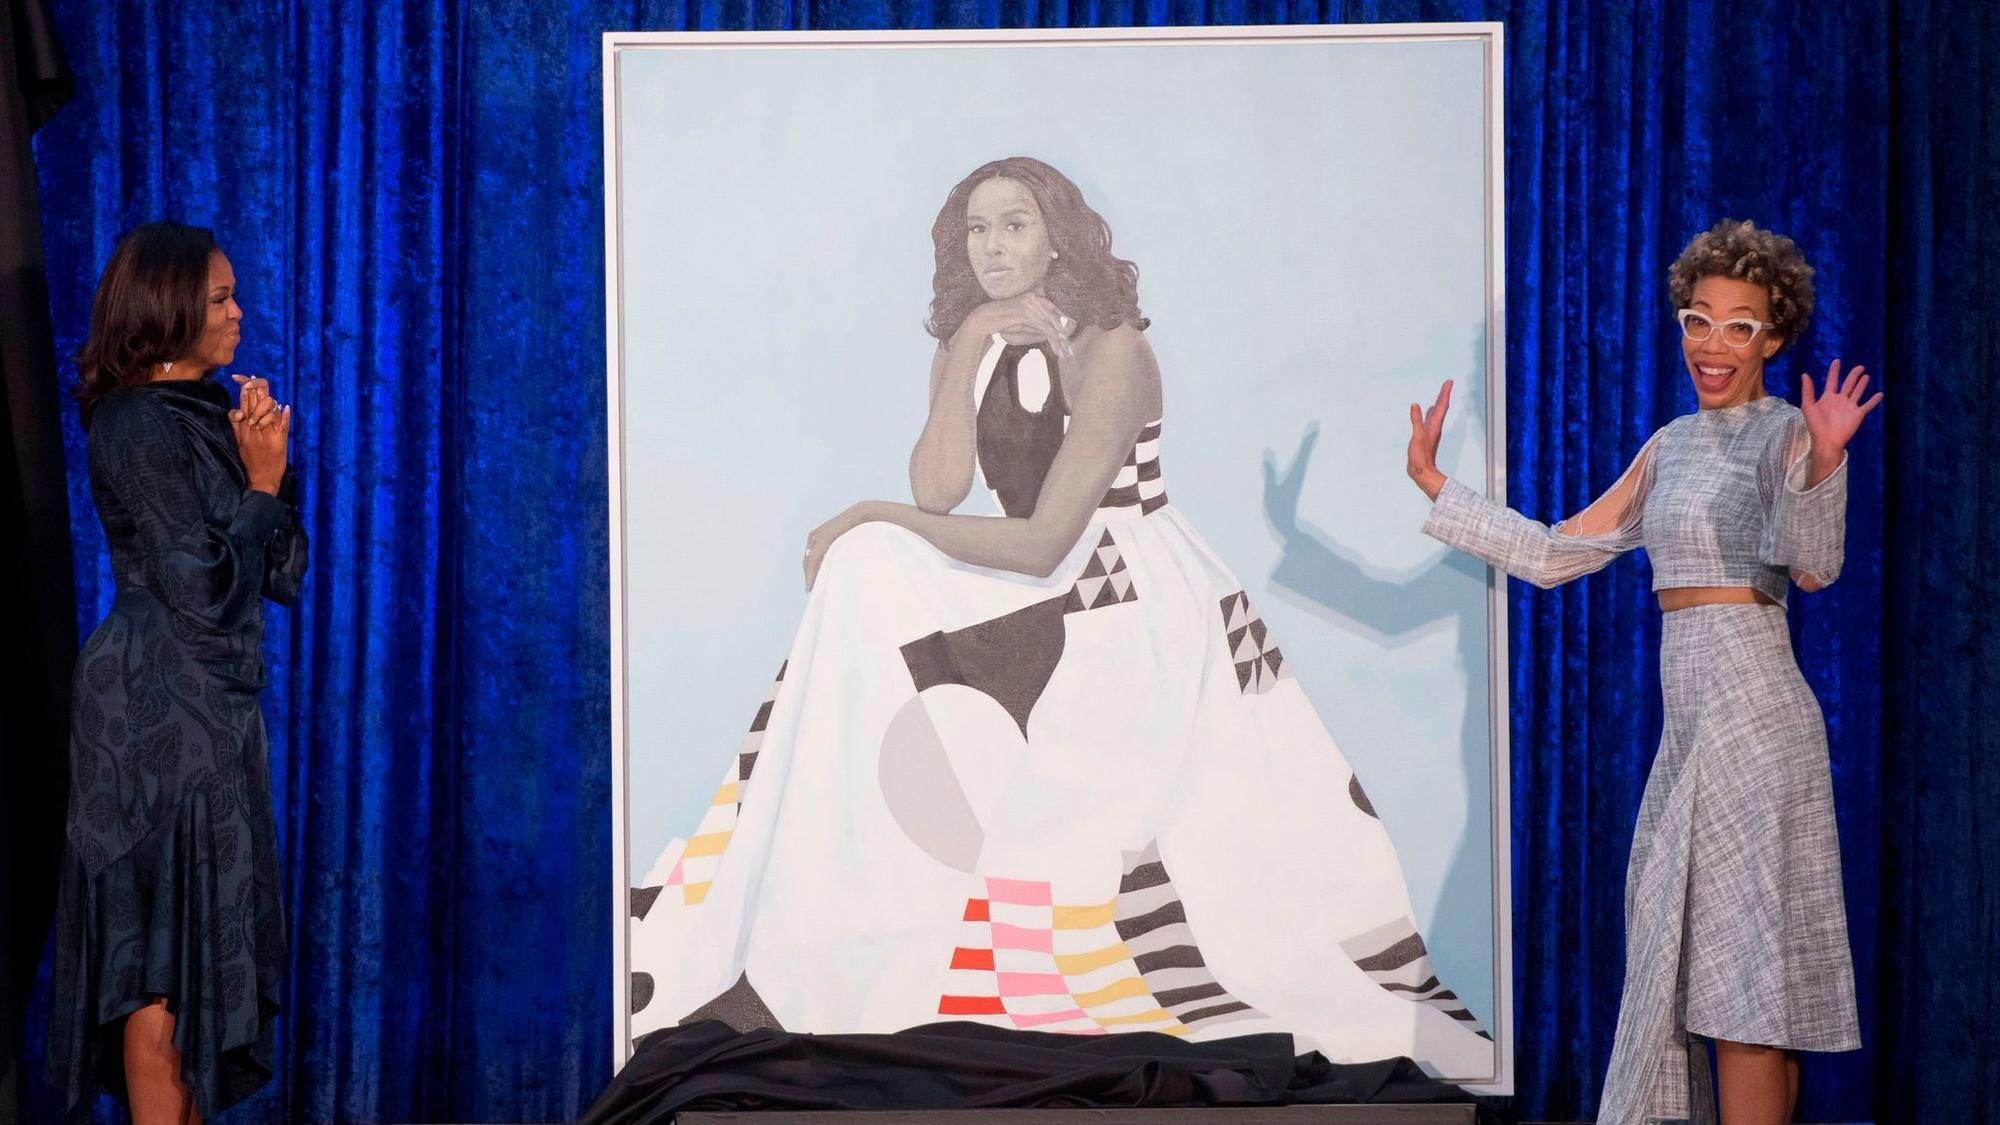 Michelle obama portrait by baltimore artist amy sherald makes michelle obama portrait by baltimore artist amy sherald makes national splash baltimore sun altavistaventures Image collections